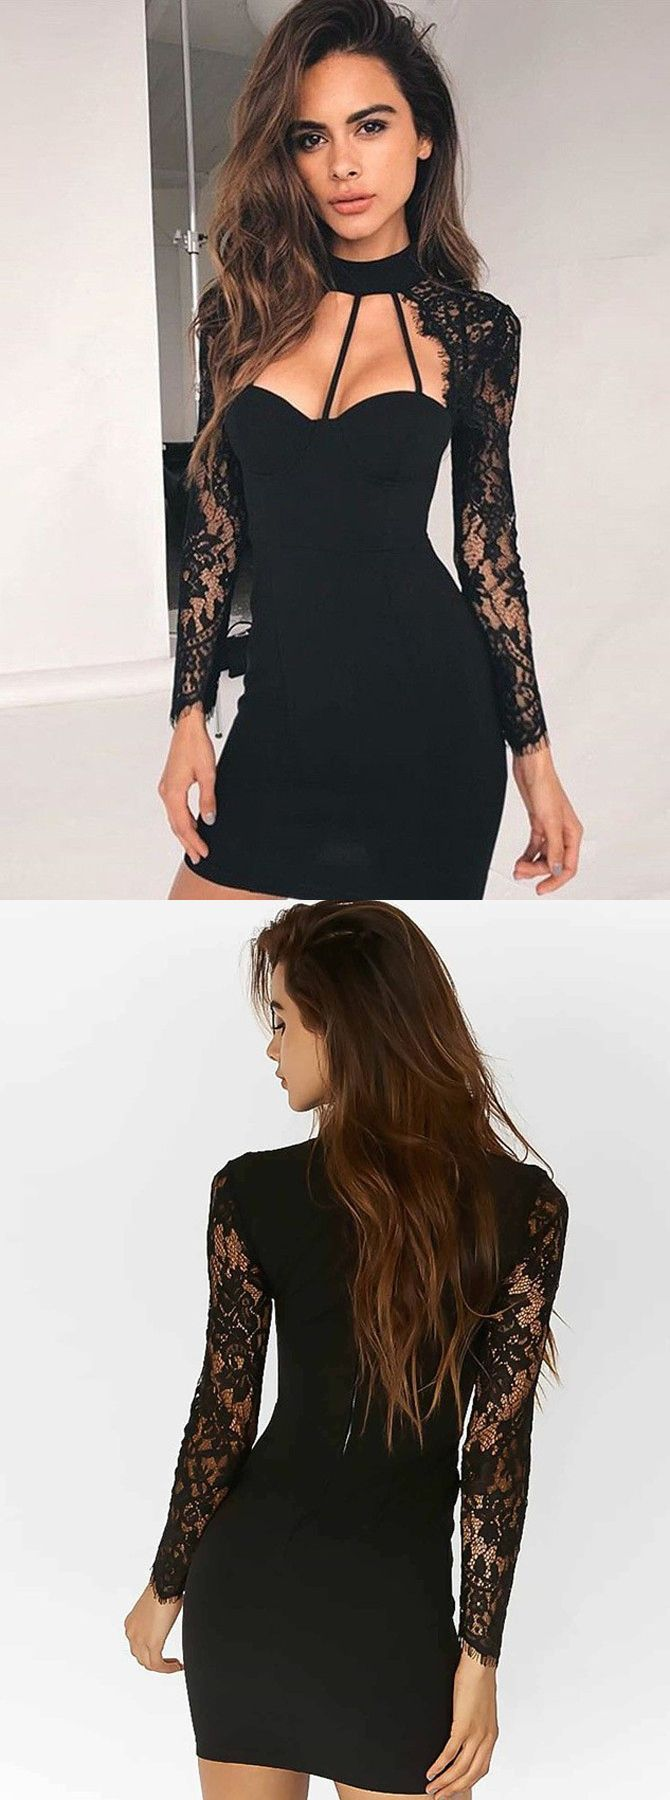 black short homecoming dresseslong sleeve lace prom dresssexy